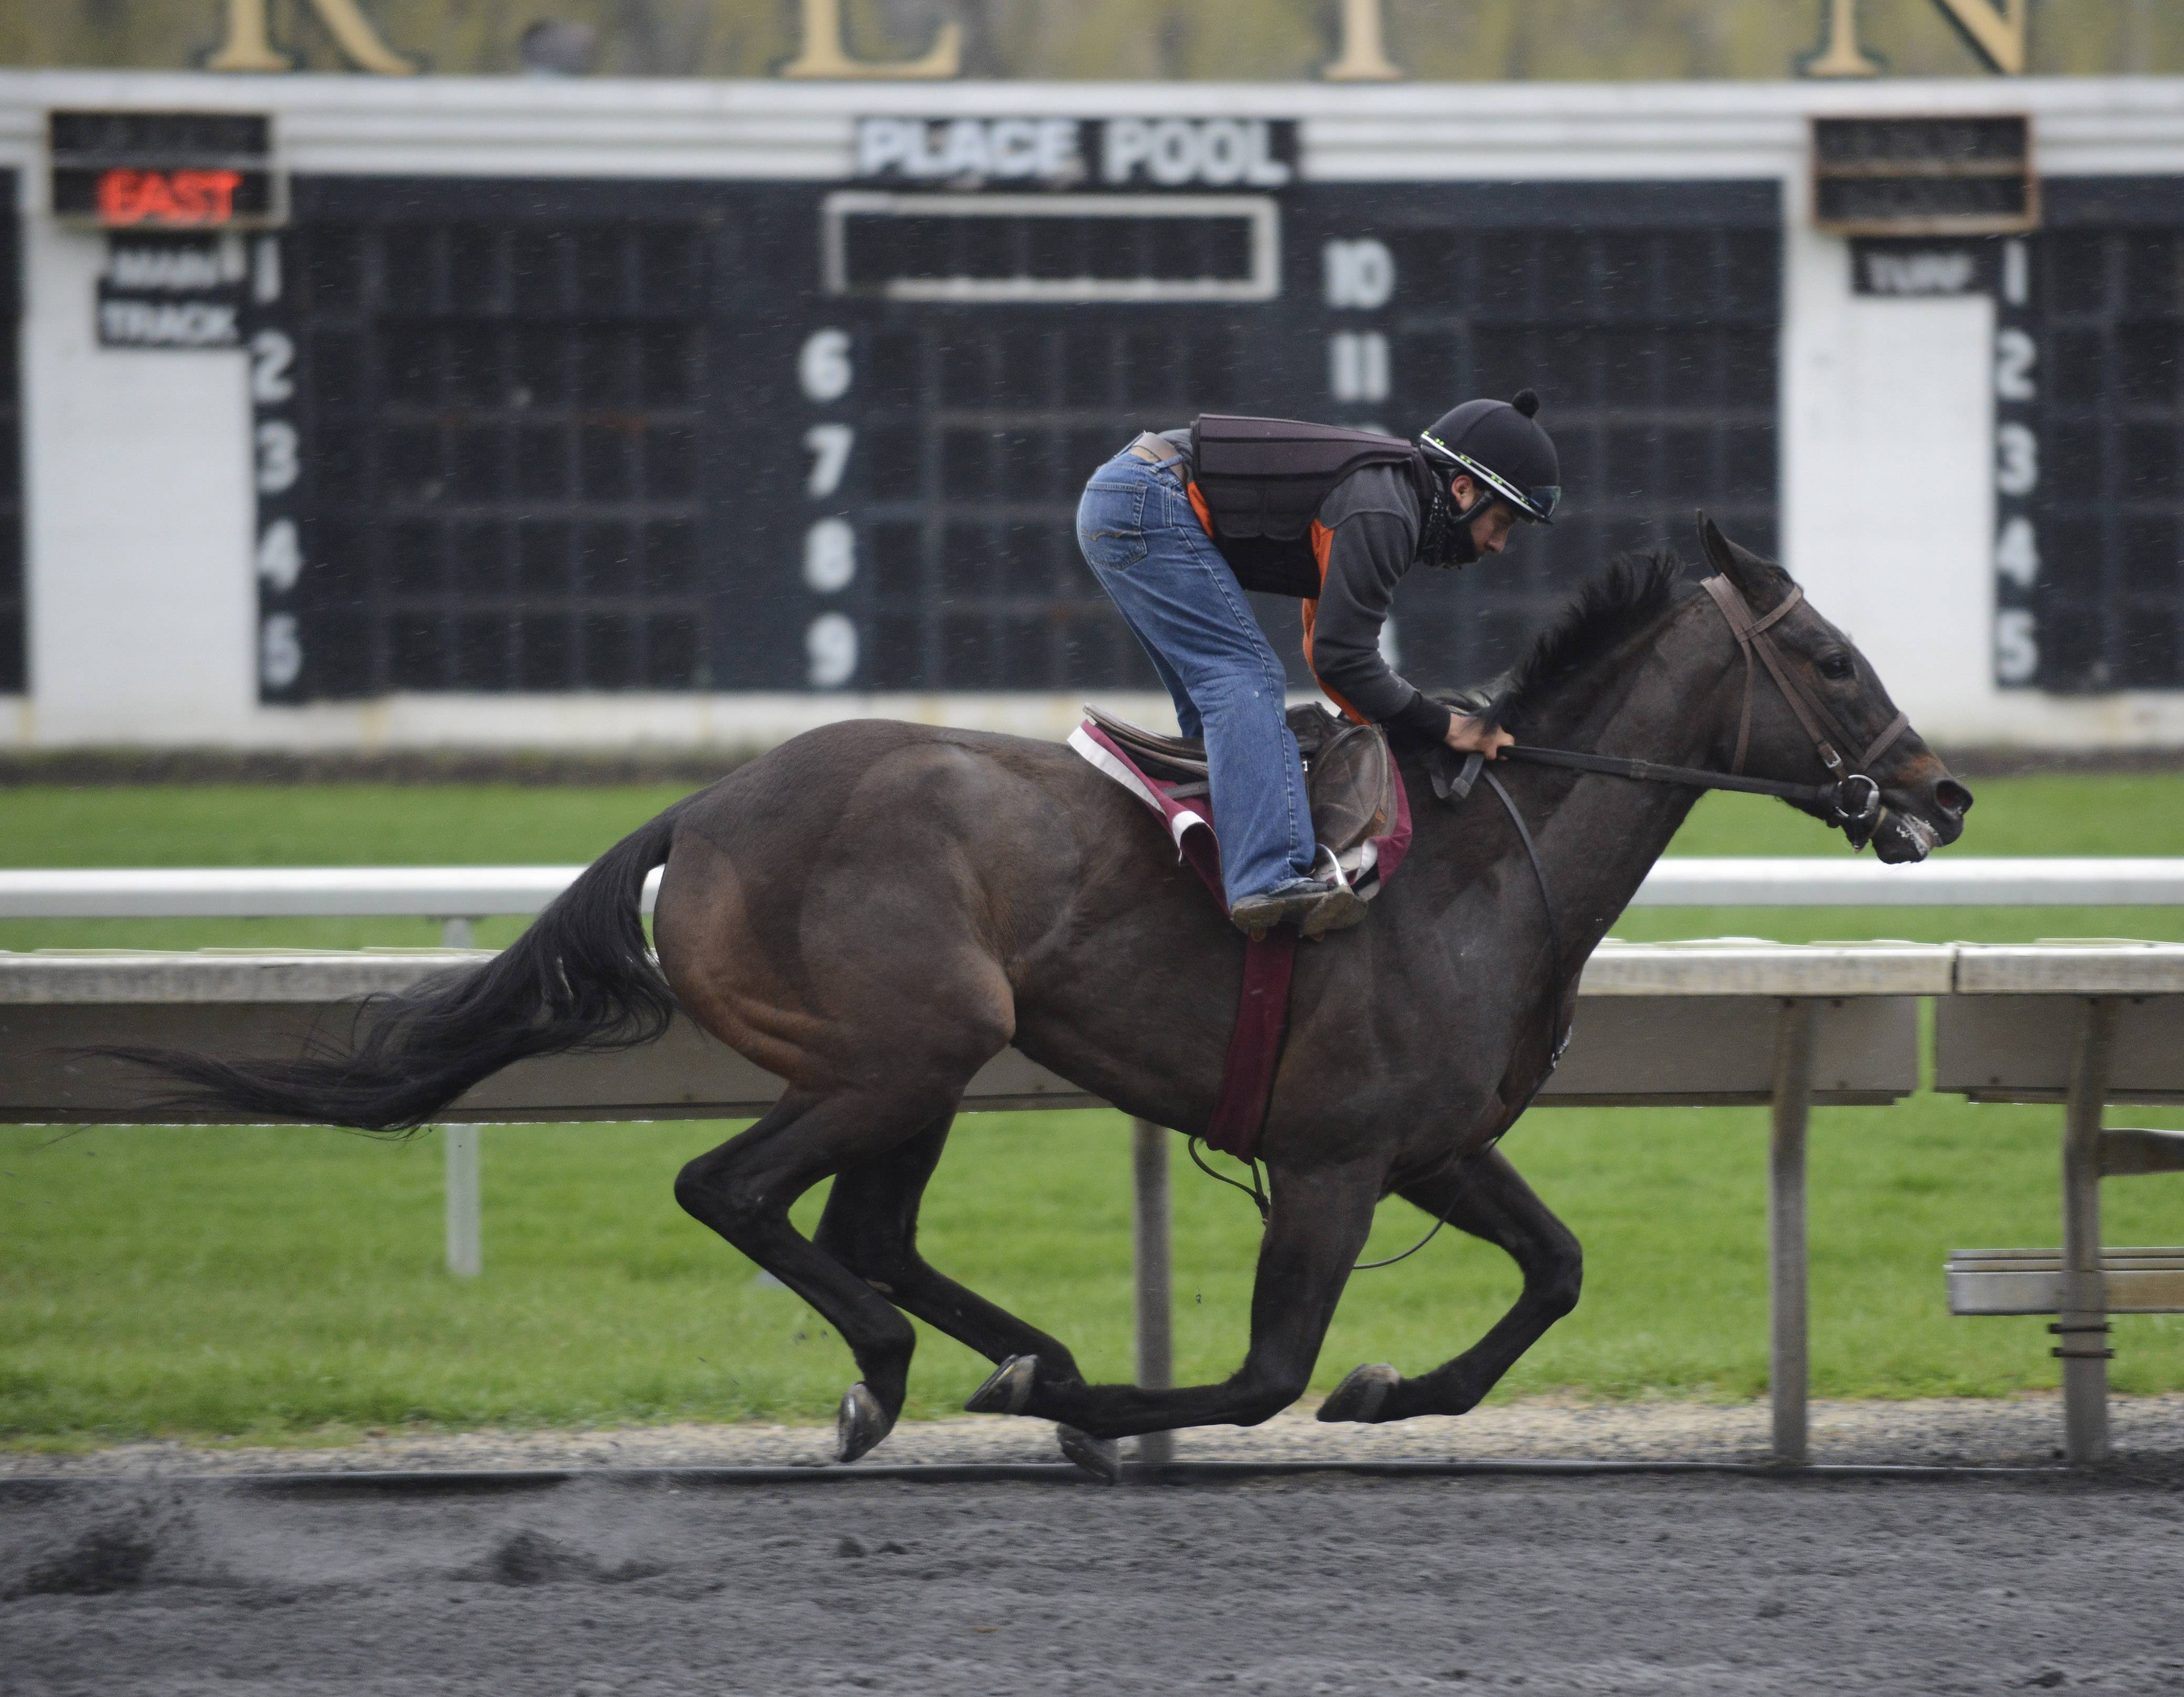 A rider and horse runs during the morning workout at Arlington International Racecourse in Arlington Heights Thursday.